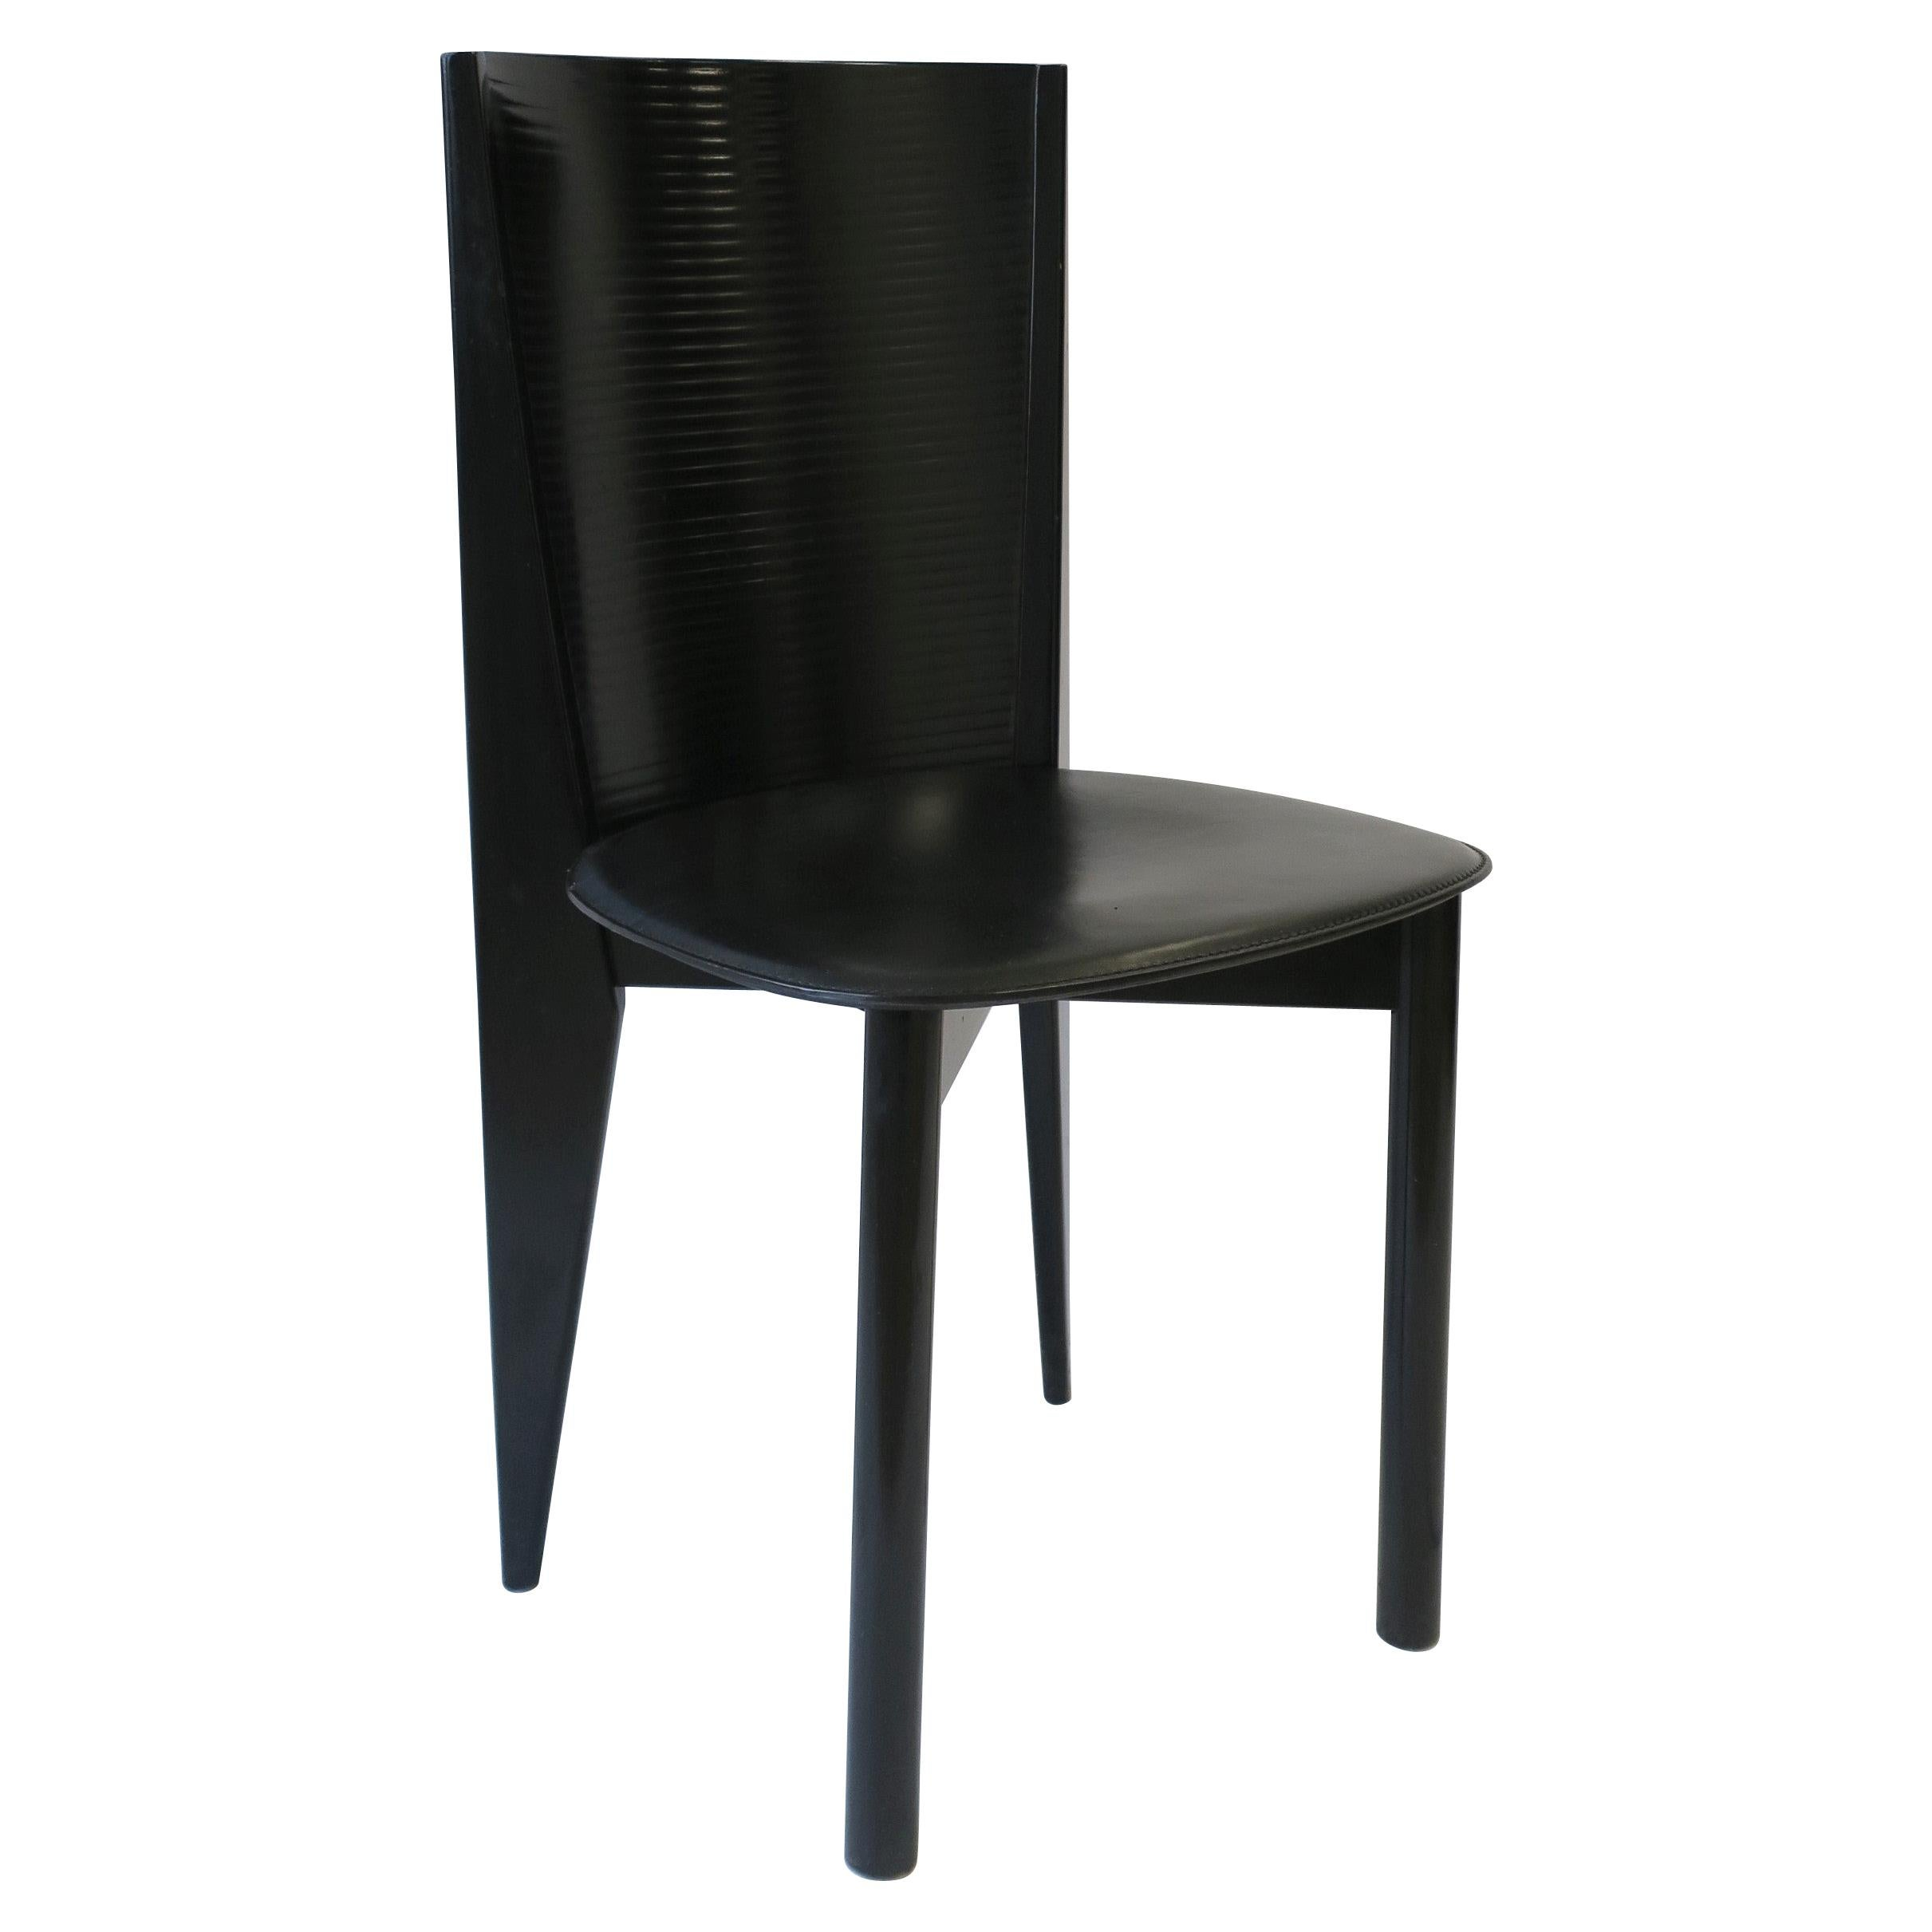 Italian Designer Postmodern Black Lacquer Wood and Leather Side Chair